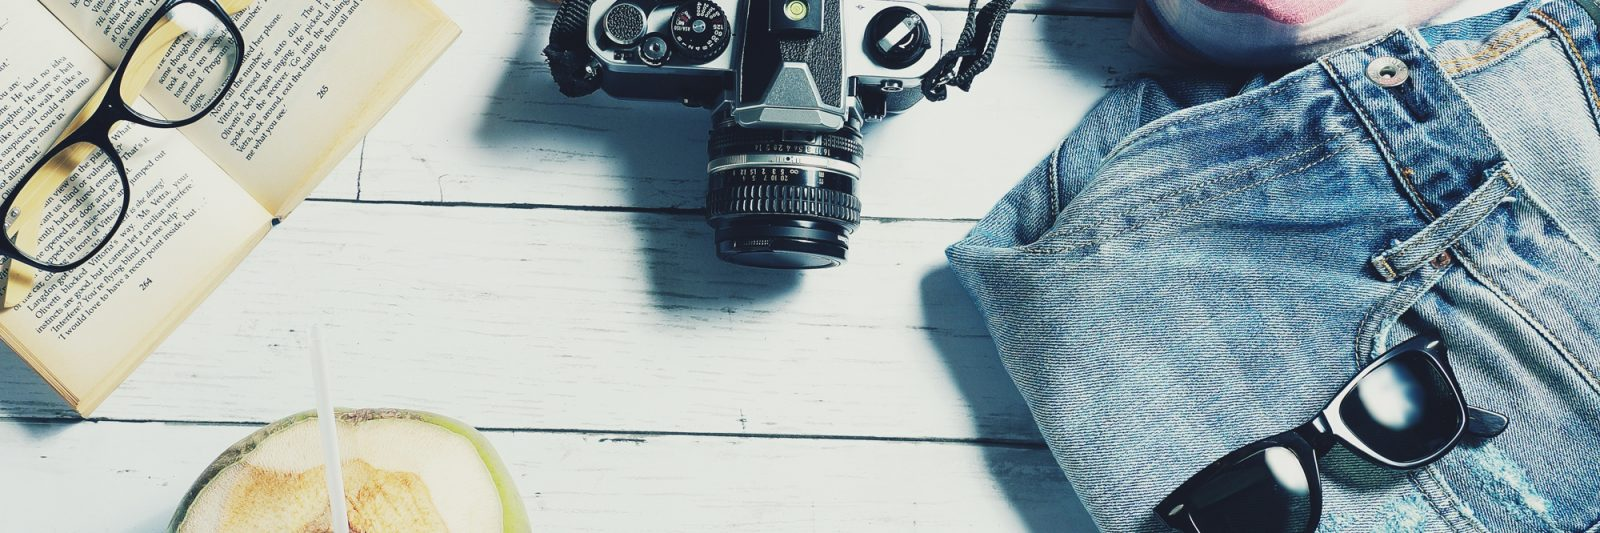 All my favorite travel gear and travel planning resources   travel blogging resources   travel blogging gear   best photography gear and travel accessories